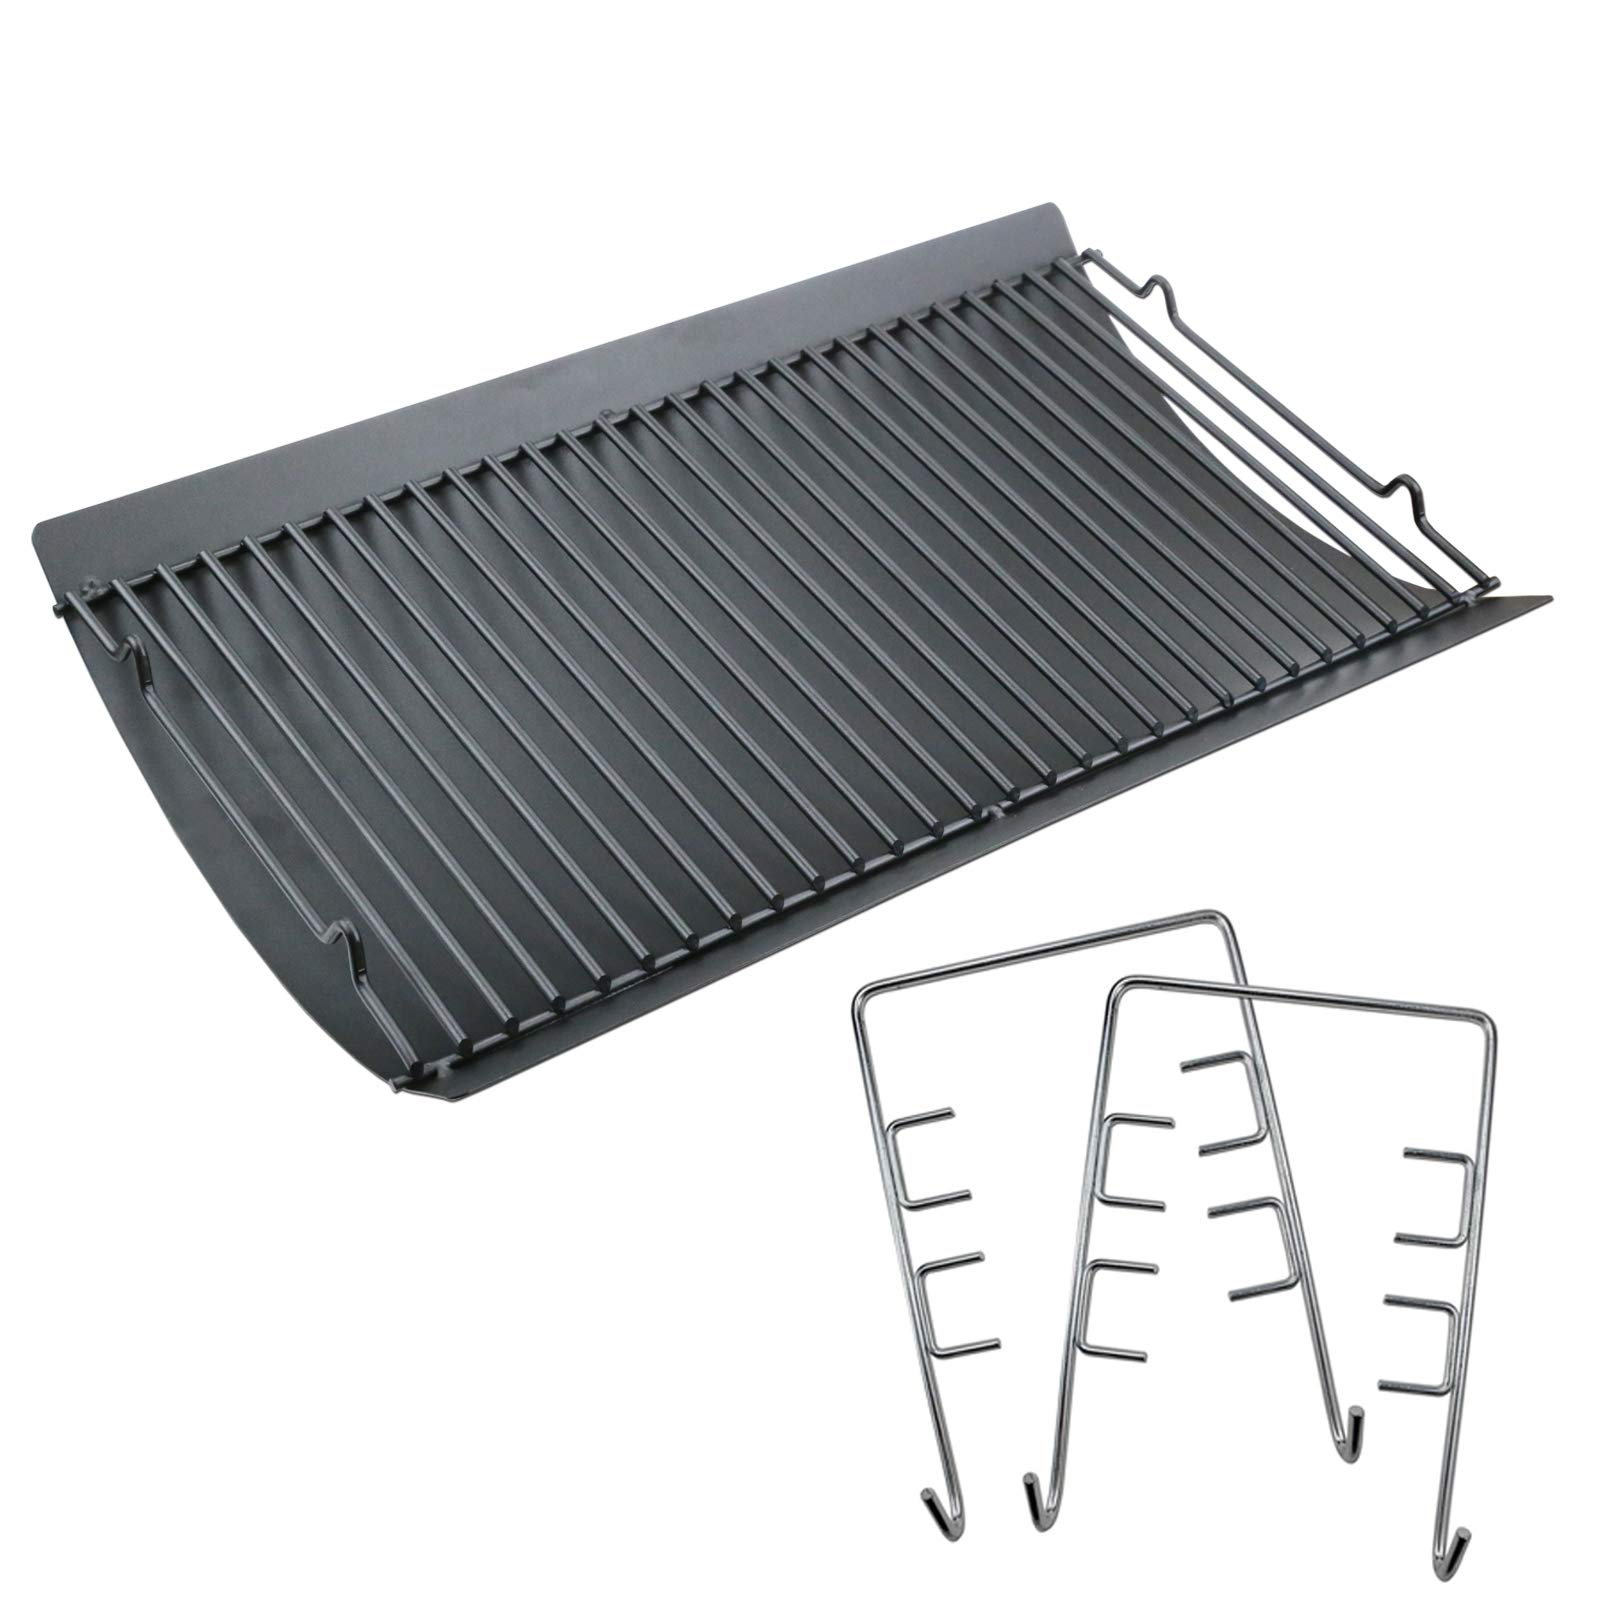 Uniflasy 20 Inches Ash Pan/Drip Pan for Chargriller 5050, 5072, 5650, 2123 Charcoal Grills, Char-Griller Model 200157, Chargriller Replacement Part with 2pcs Fire Grate Hanger by Uniflasy